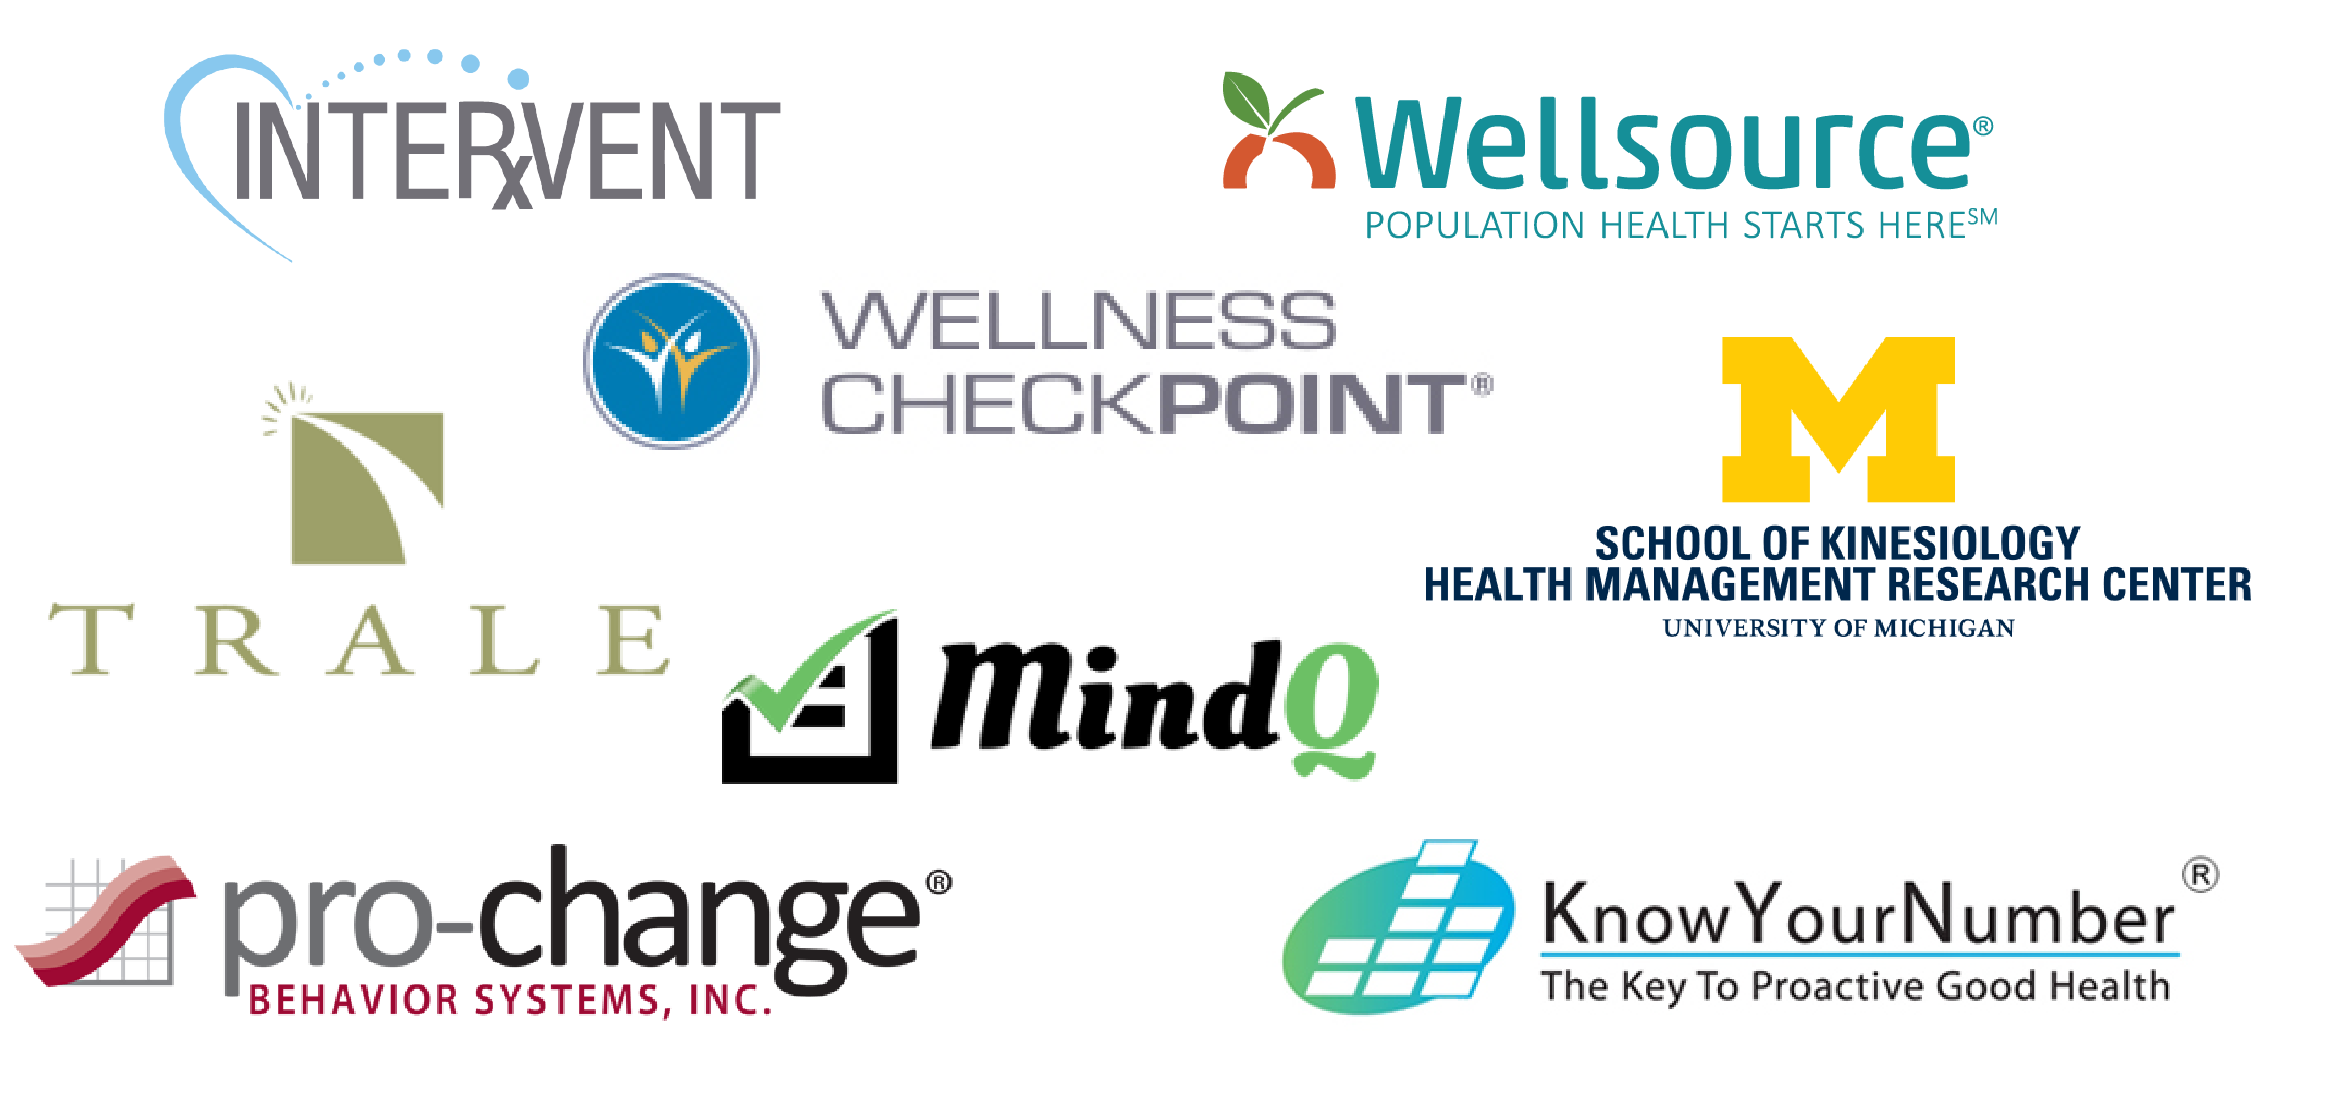 8 Top Health Assessment Resources for Better Employee